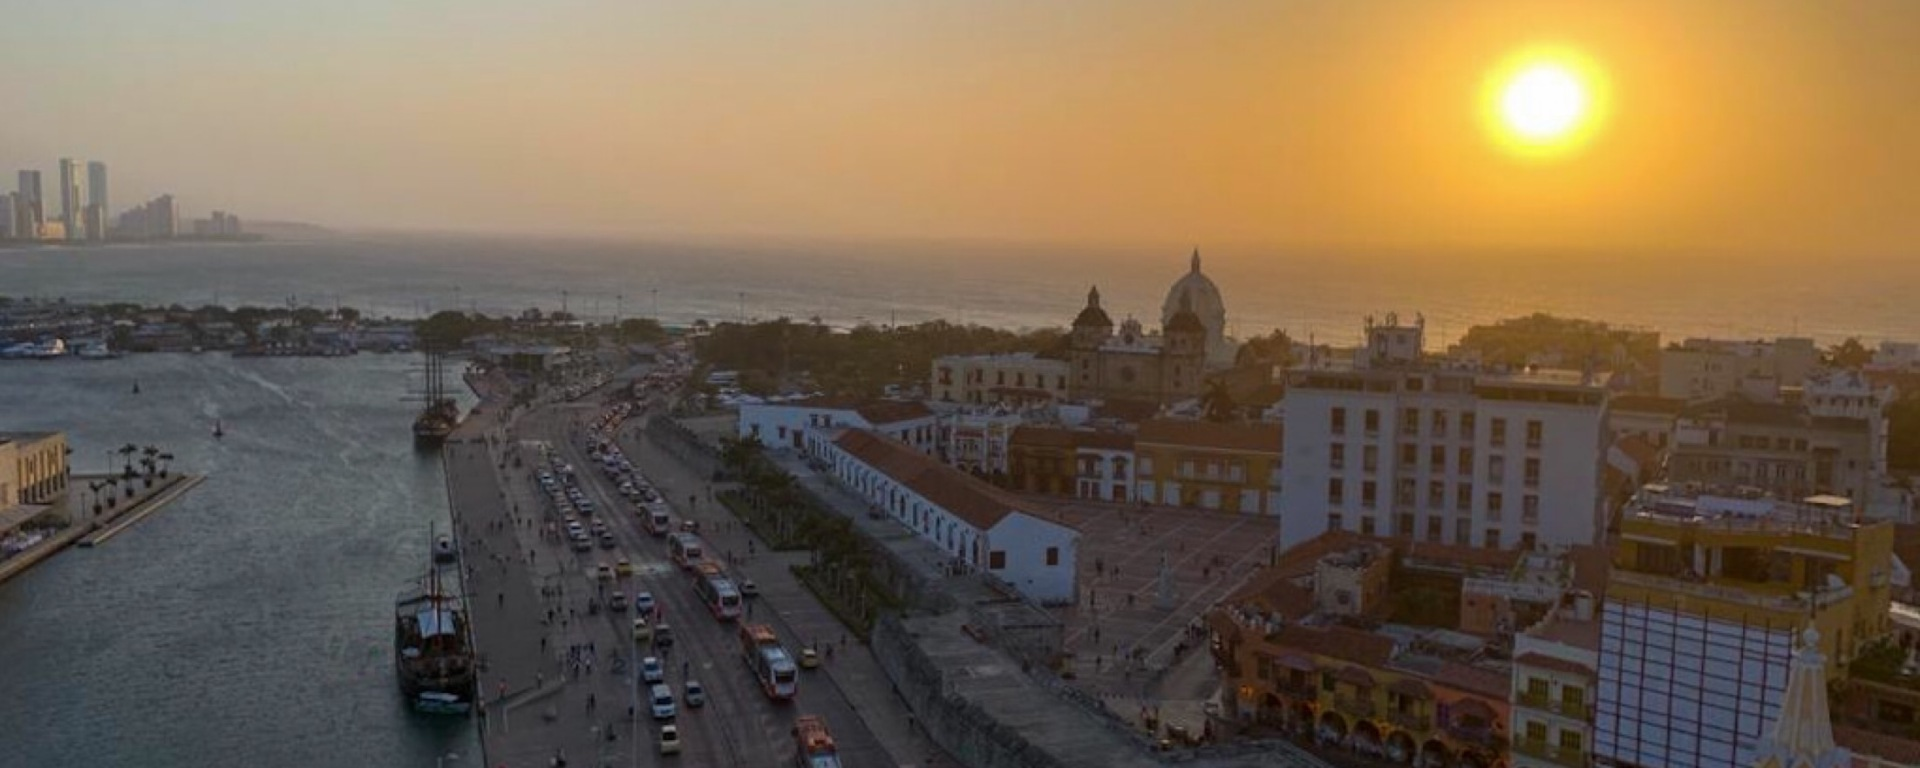 Sunset in Cartagena de Indias, Colombia